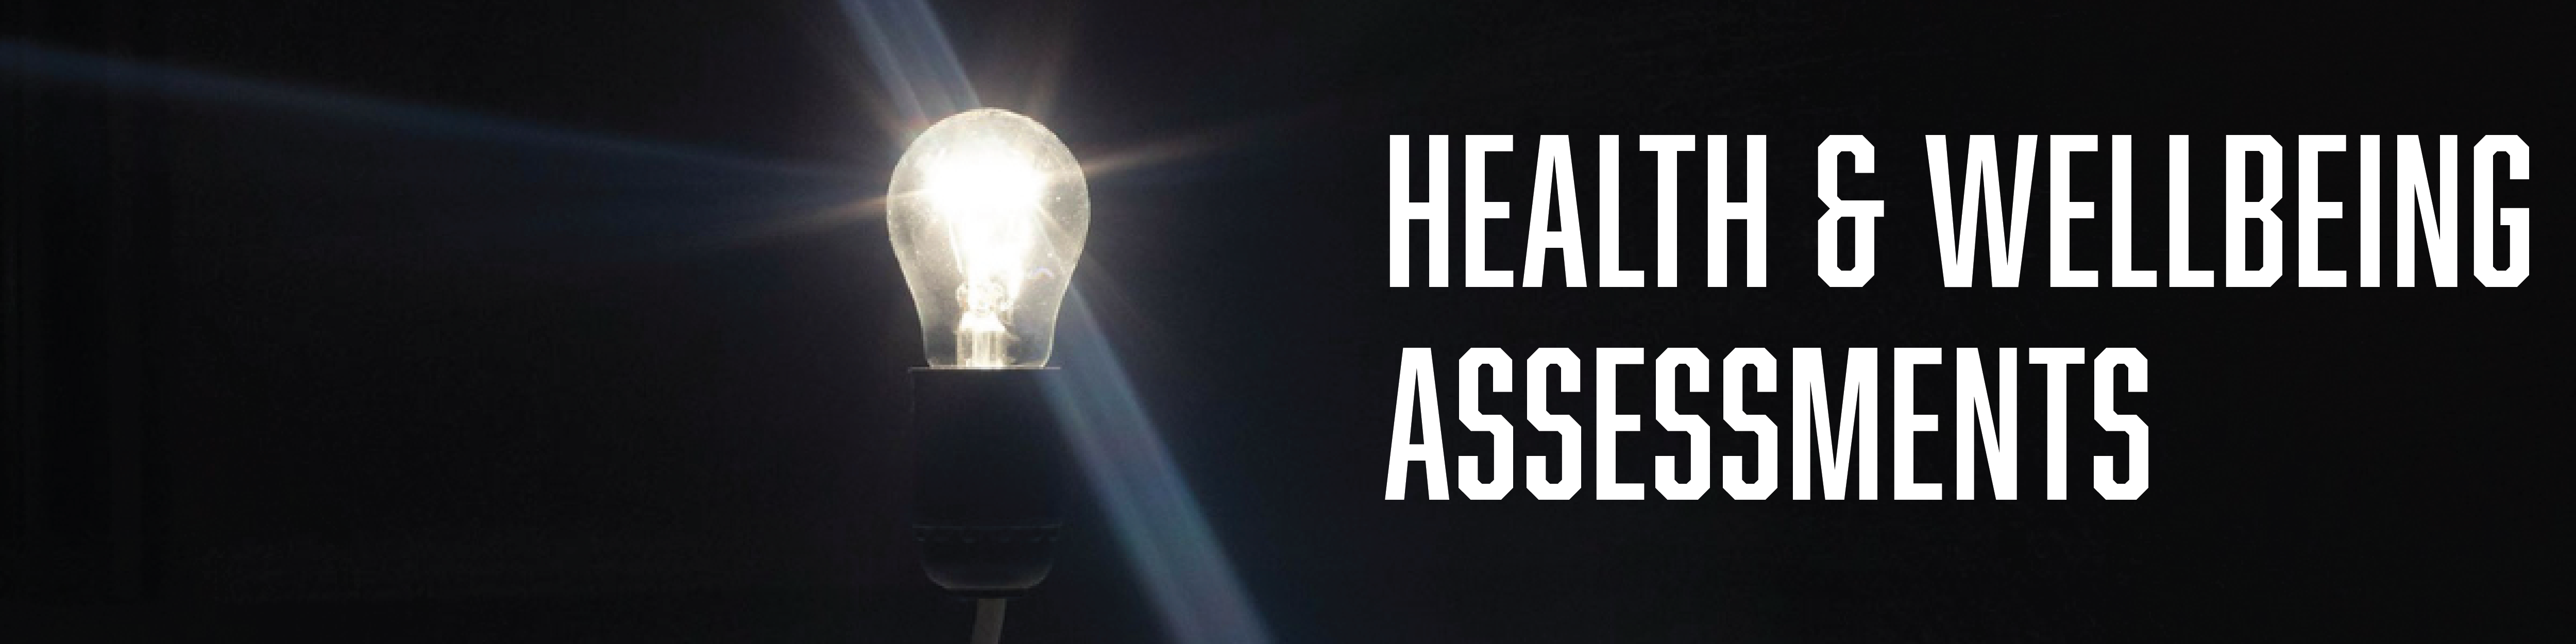 Health & Wellbeing Assessments banner with image of lightbulb